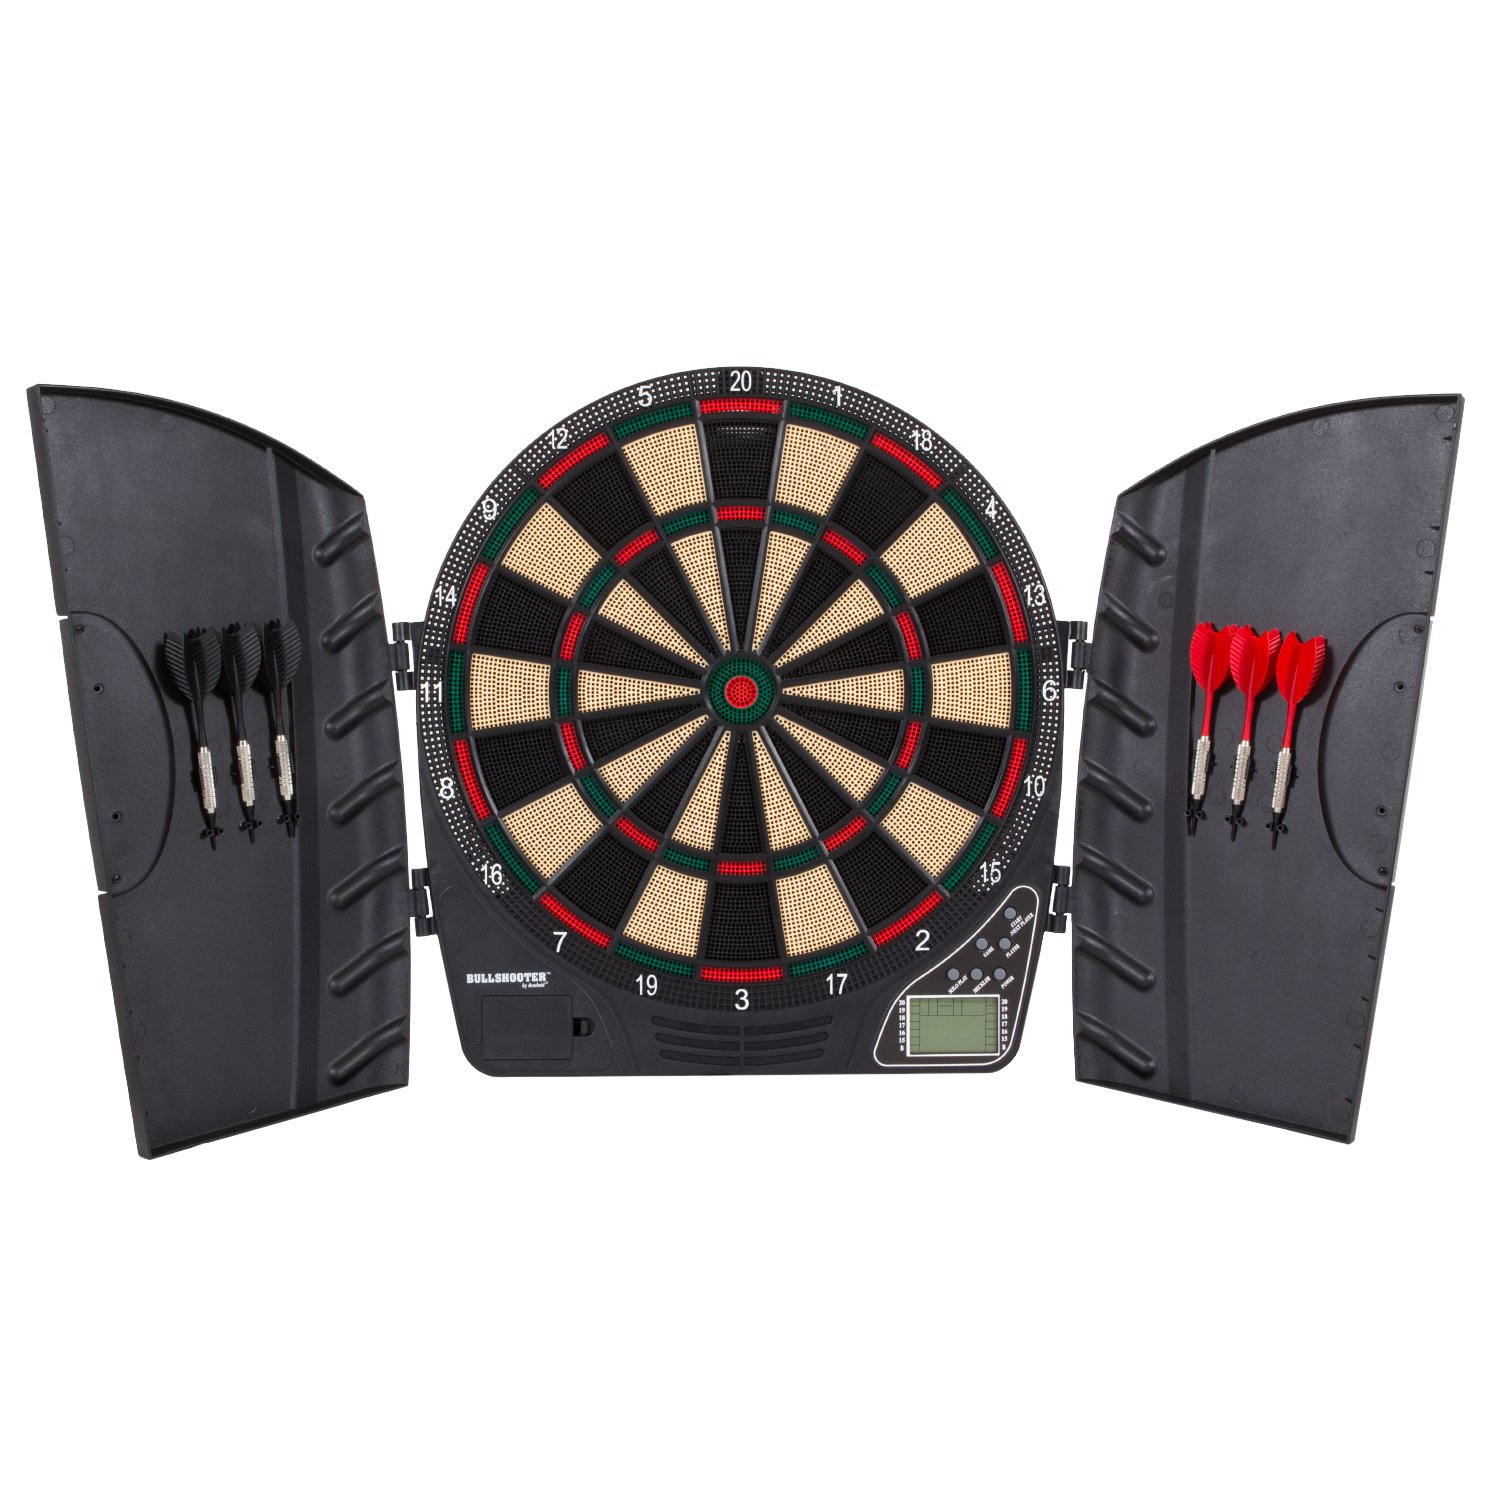 Bullshooter Reactor Electronic Dartboard and Cabinet with LCD display, Cricket Scoring Displays, 8-Player Scoring, and More